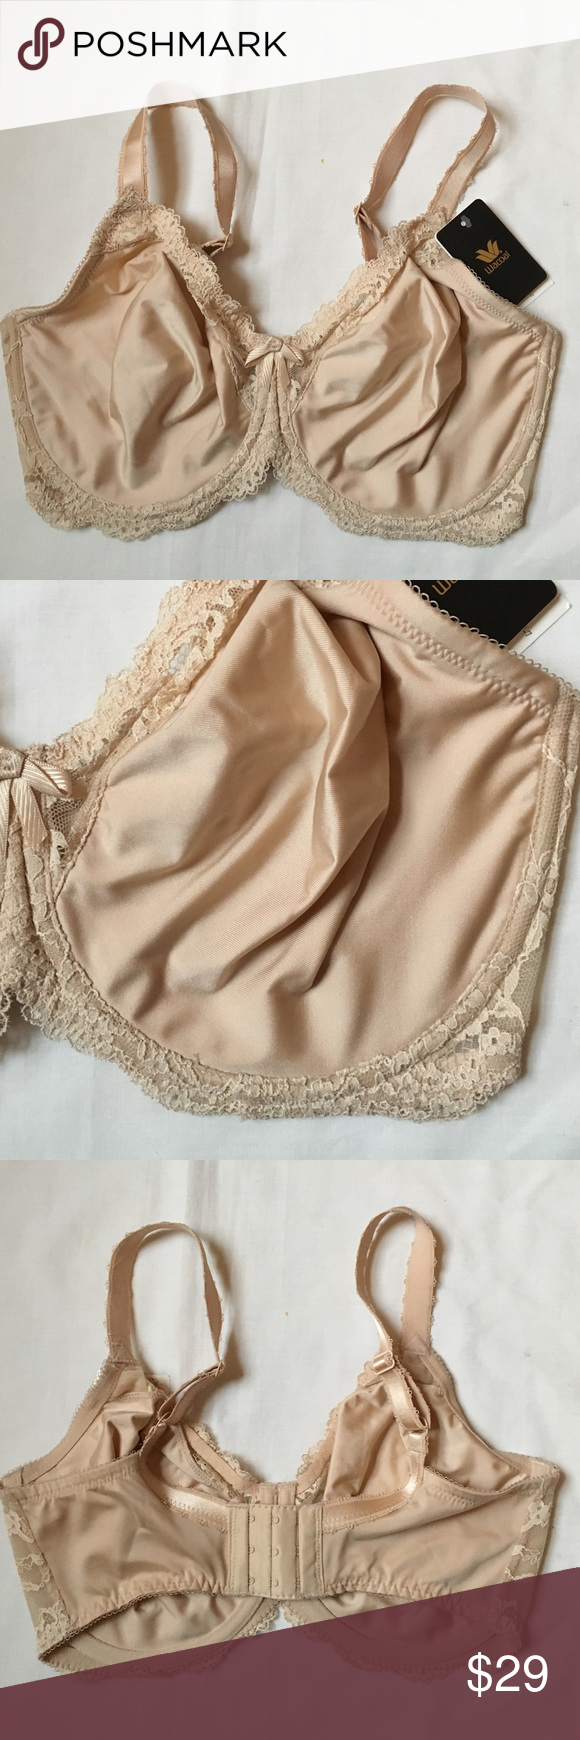 56505ef4d2 WACOAL 855203 Supporting Role Underwire Bra 34G Unlined two ply cups in  soft sheen stretch fabric